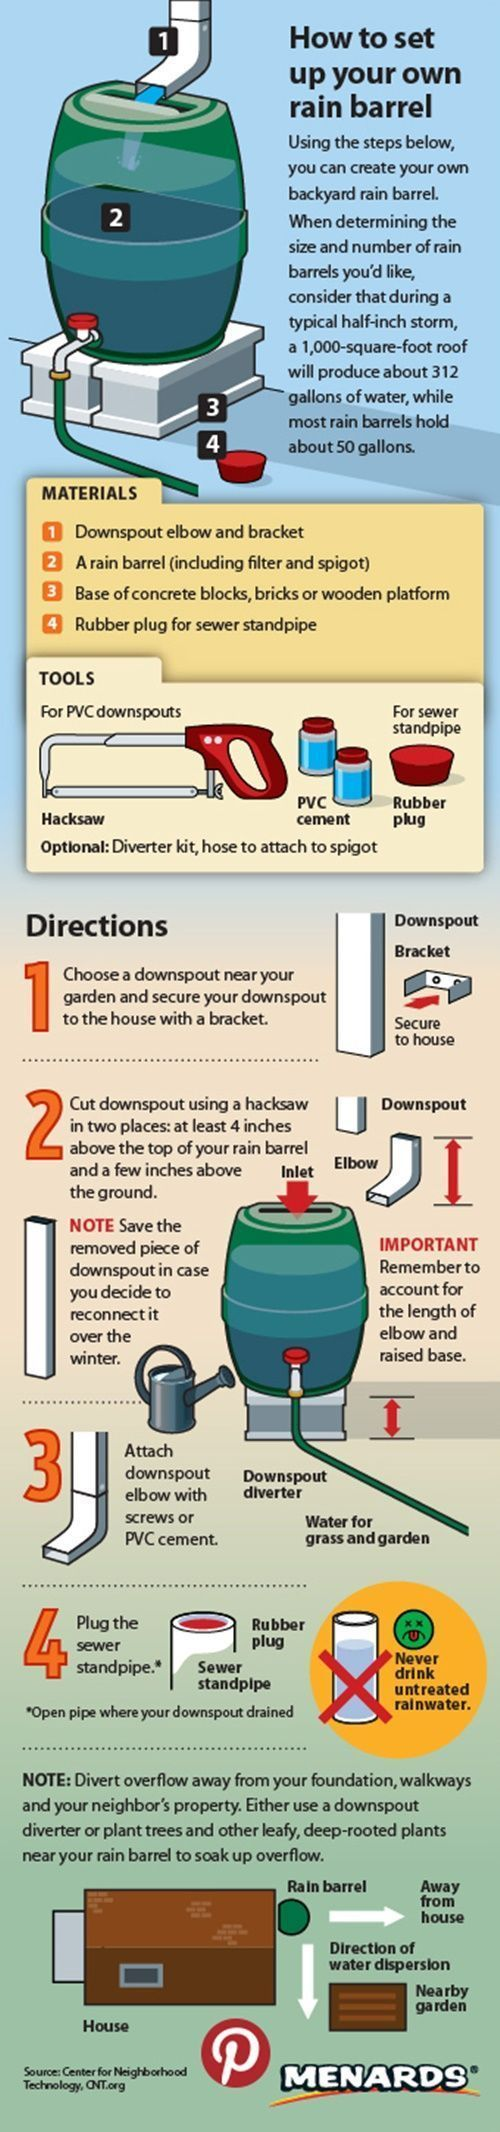 Set Up Homesteading Rainwater Barrel Project Homesteading  - The Homestead Survival .Com